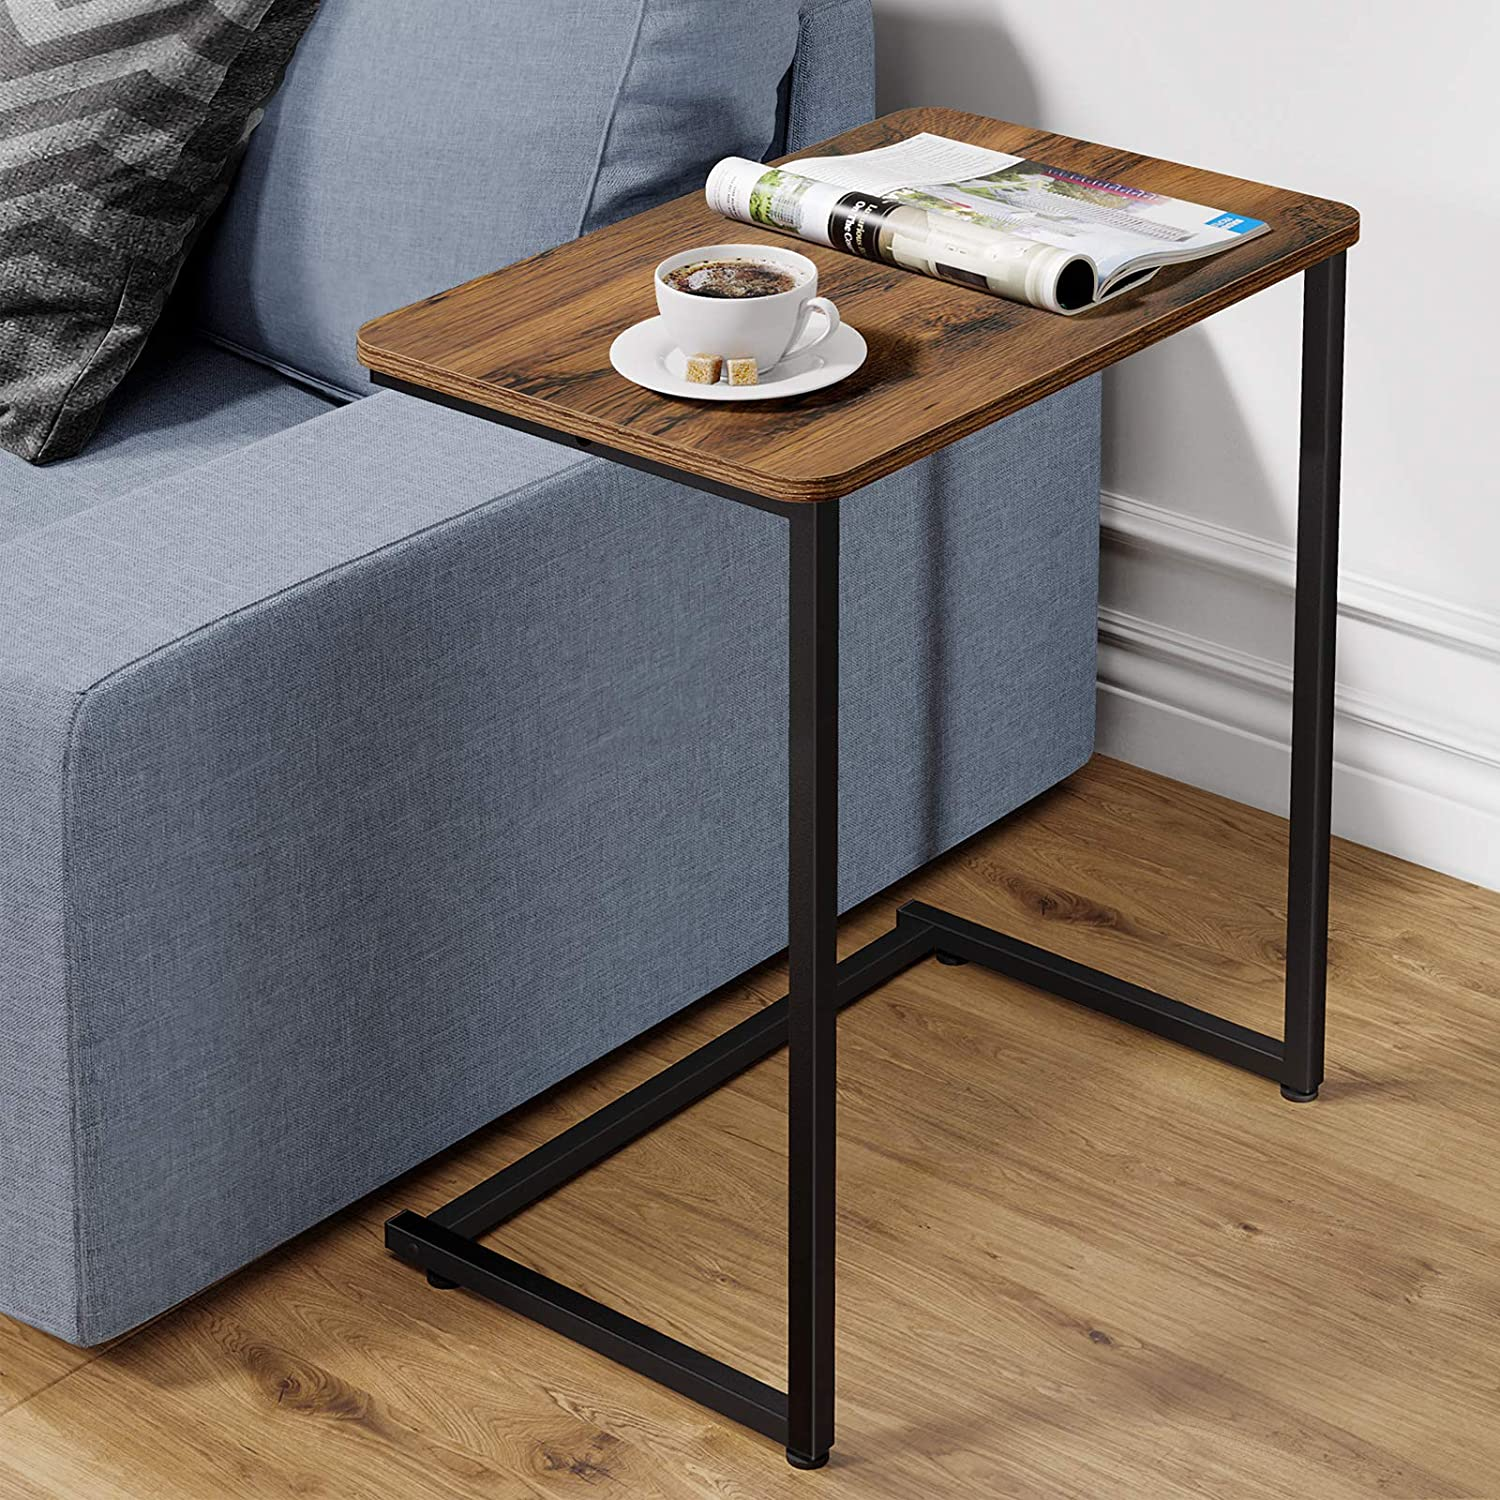 Homemaxs C Table Sofa Side End Table - Vintage Accent Couch Table Accent Couch Table Snack Table for Living Room| Laptop| Bedroom| Coffee| Couch| Small Spaces